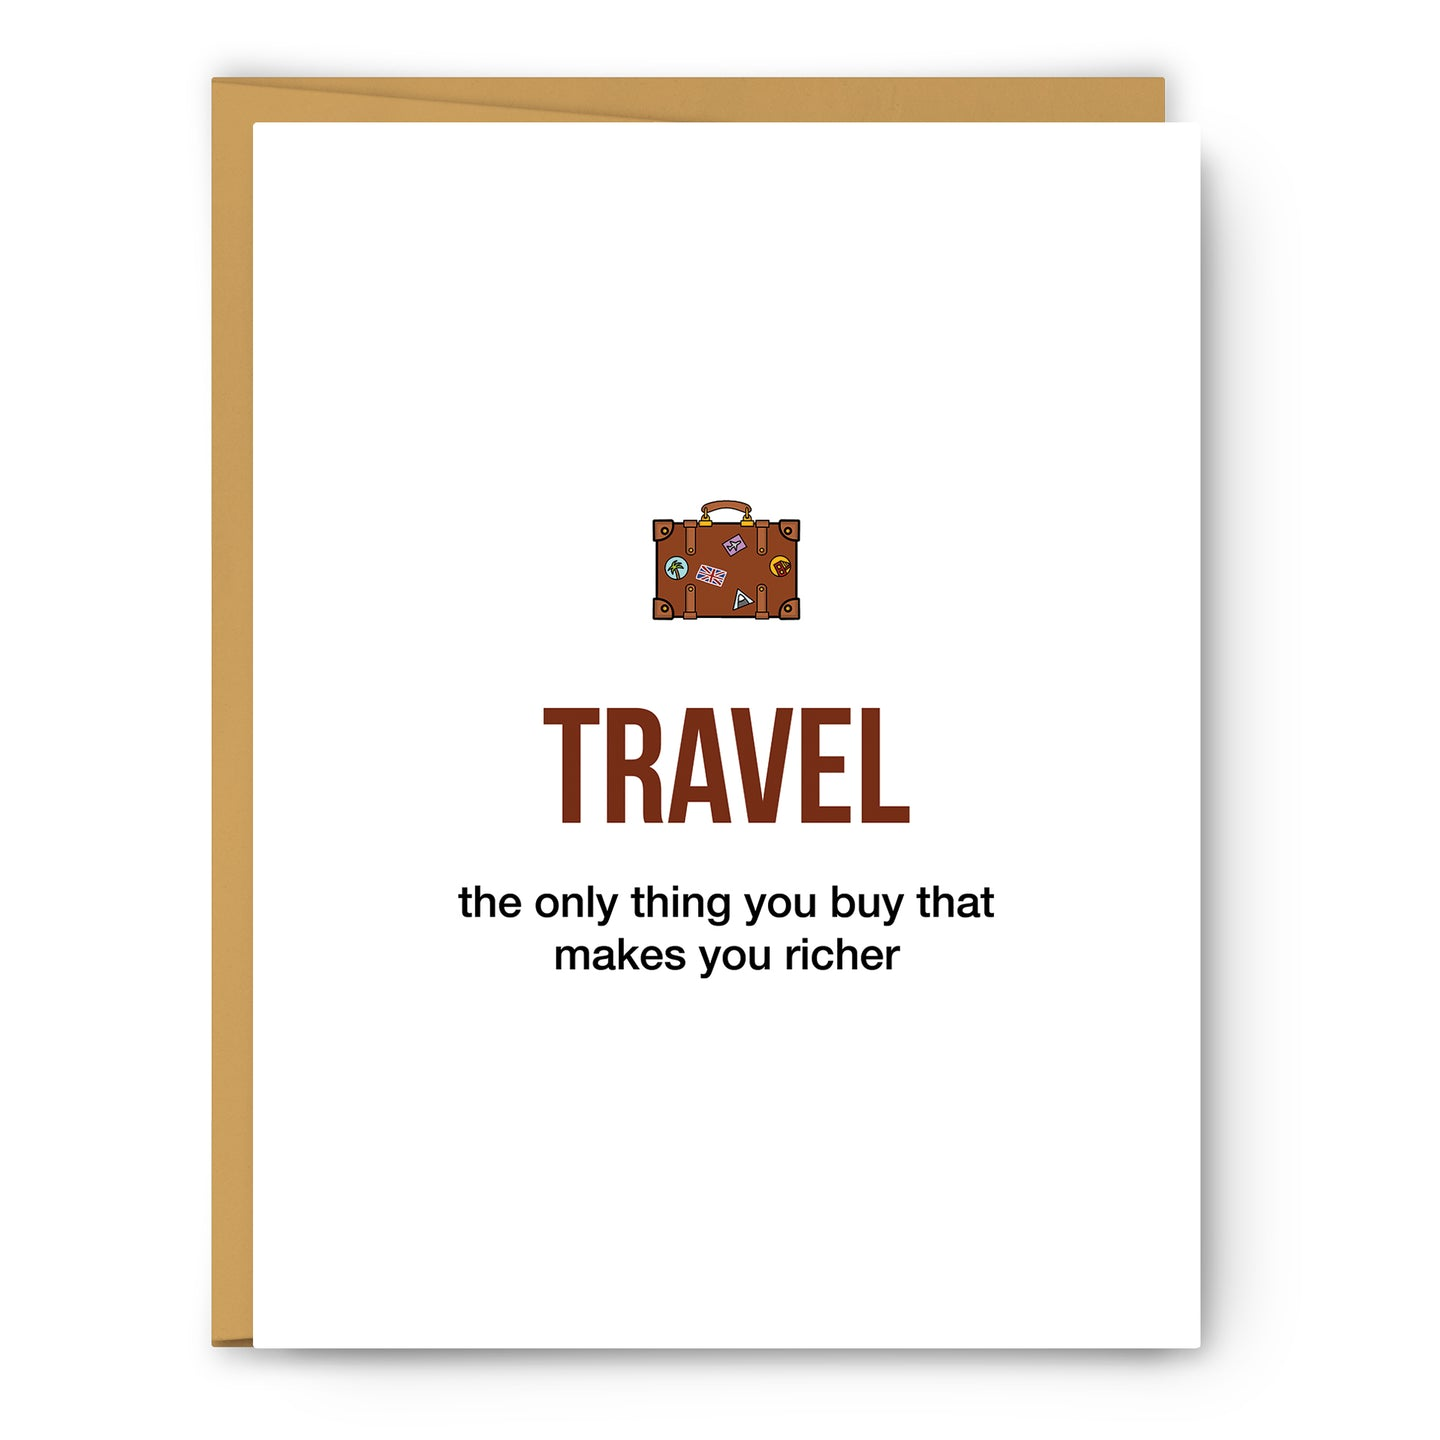 Travel Definition Illustration - Unframed Art Print Poster Or Greeting Card